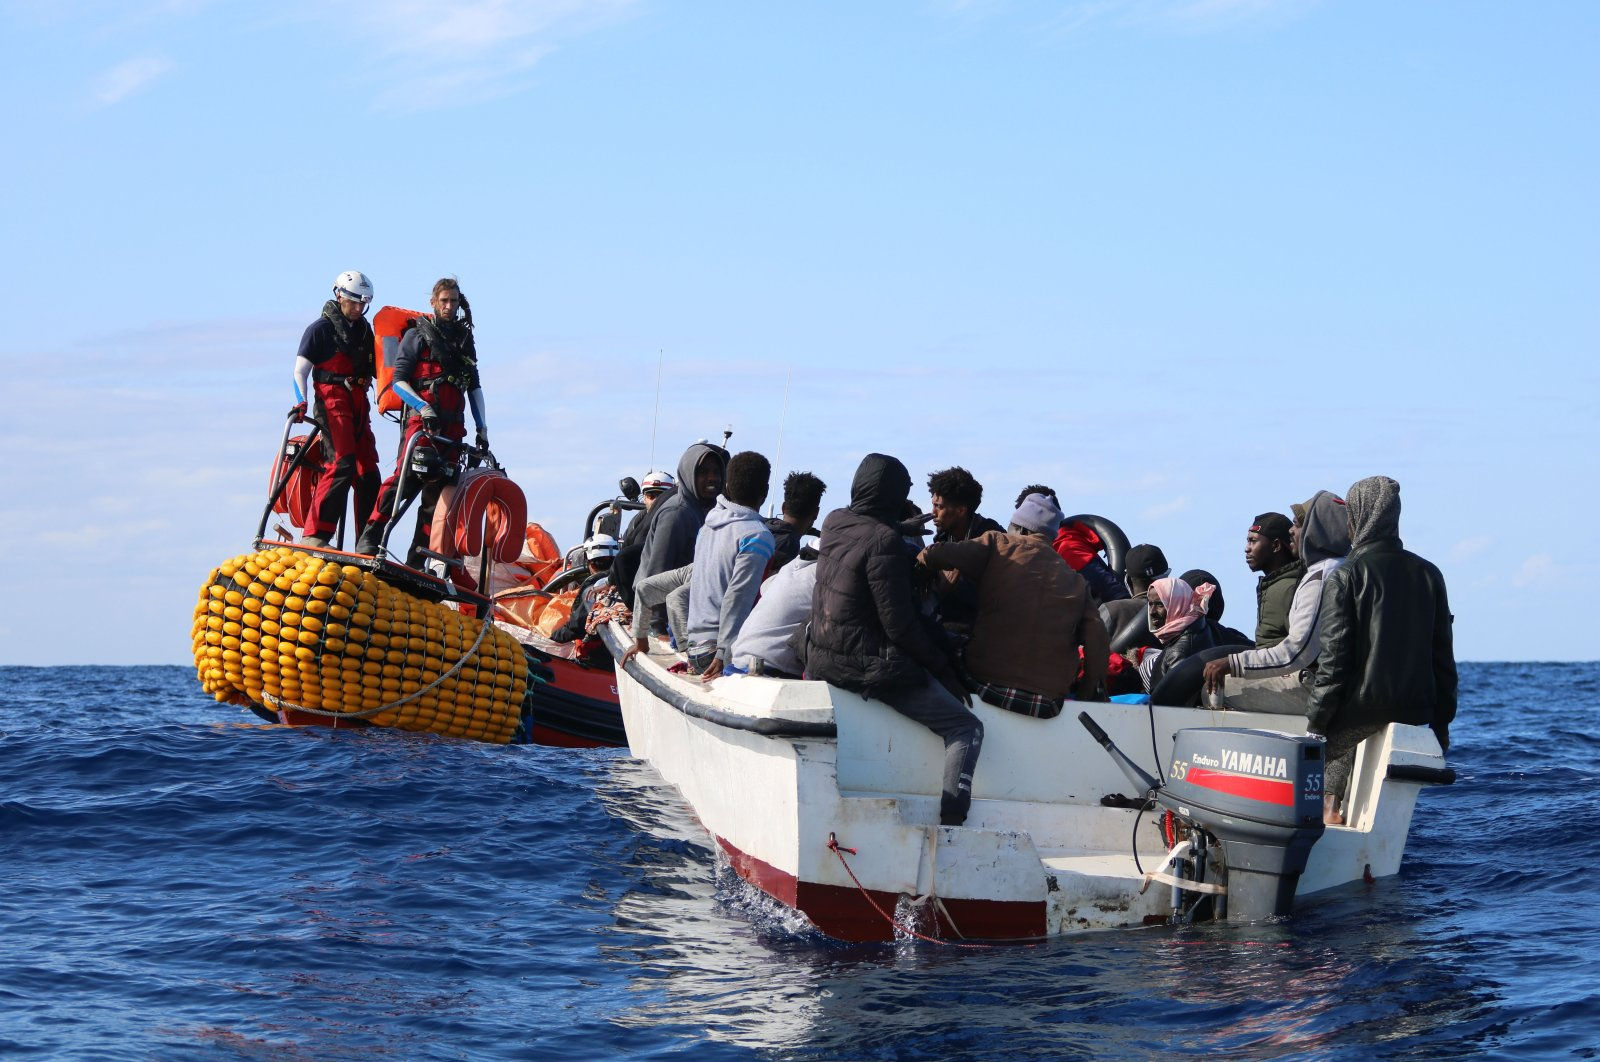 SOS Mediterranee team members from the humanitarian ship Ocean Viking approach a boat in distress with 30 people on board in the Mediterranean waters off Libya, Nov. 20, 2019. (AP Photo)